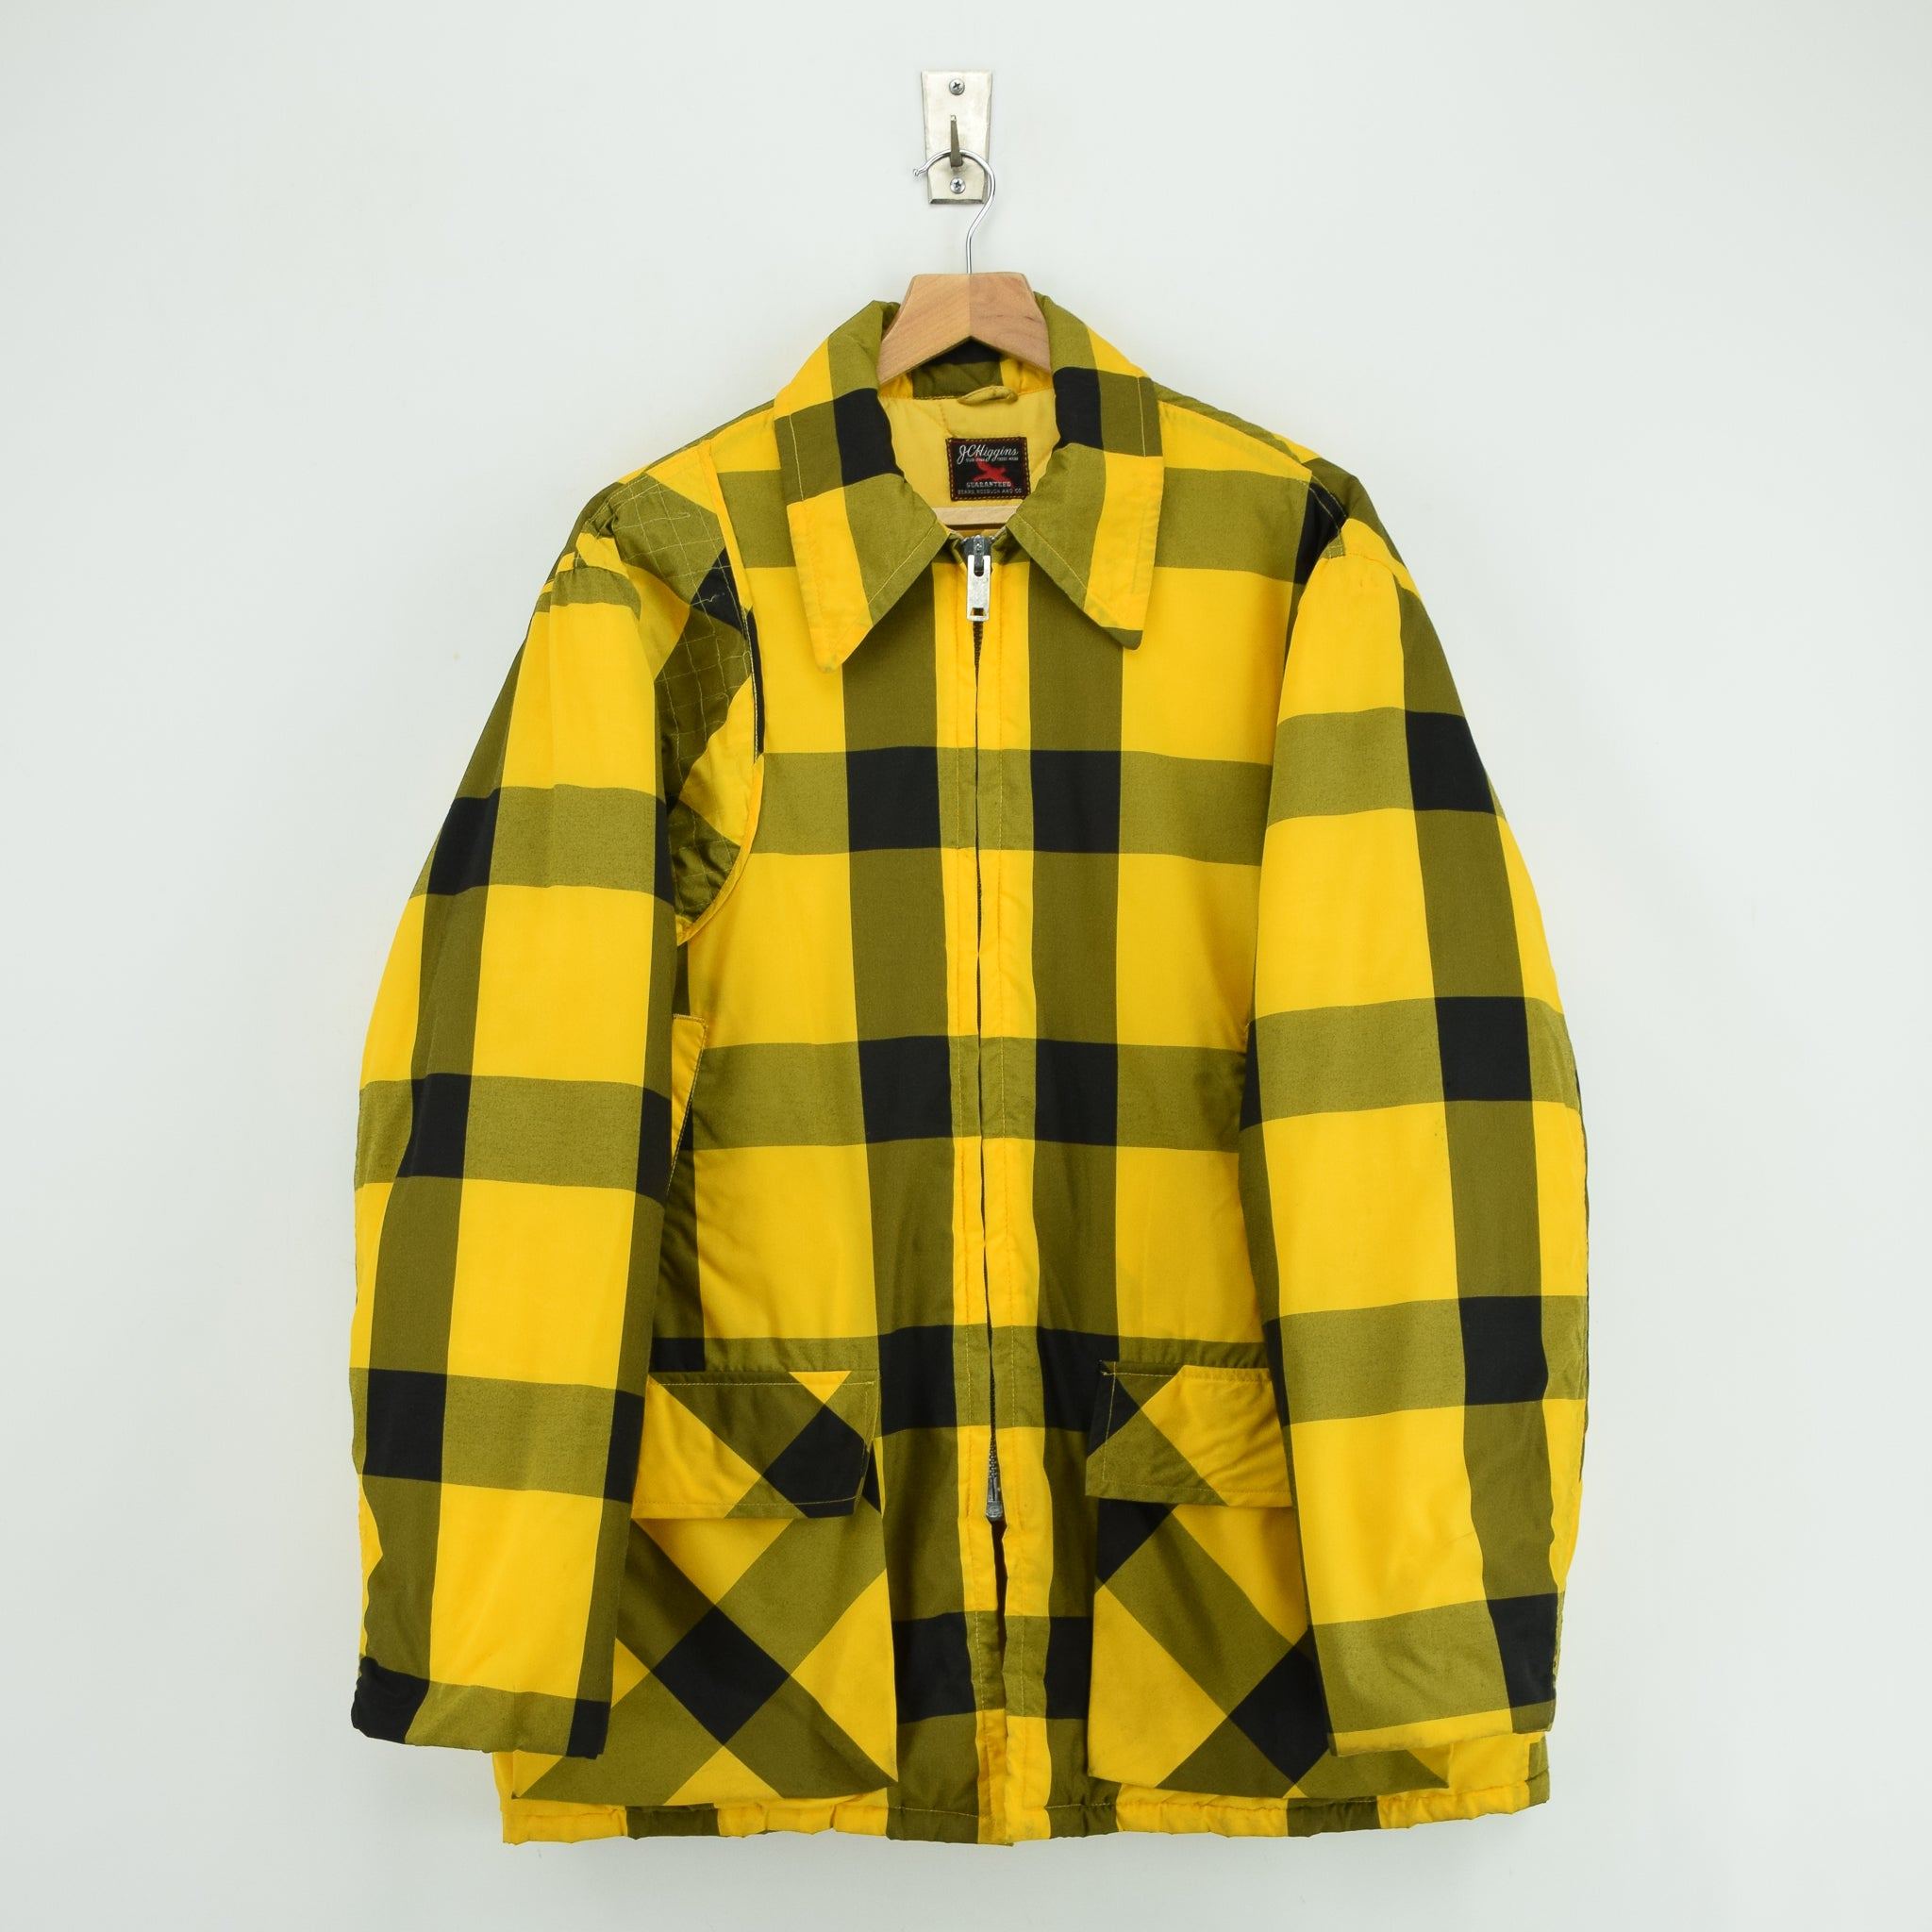 Vintage Sears Plaid Check Yellow Hunting Style Jacket Made in USA L front